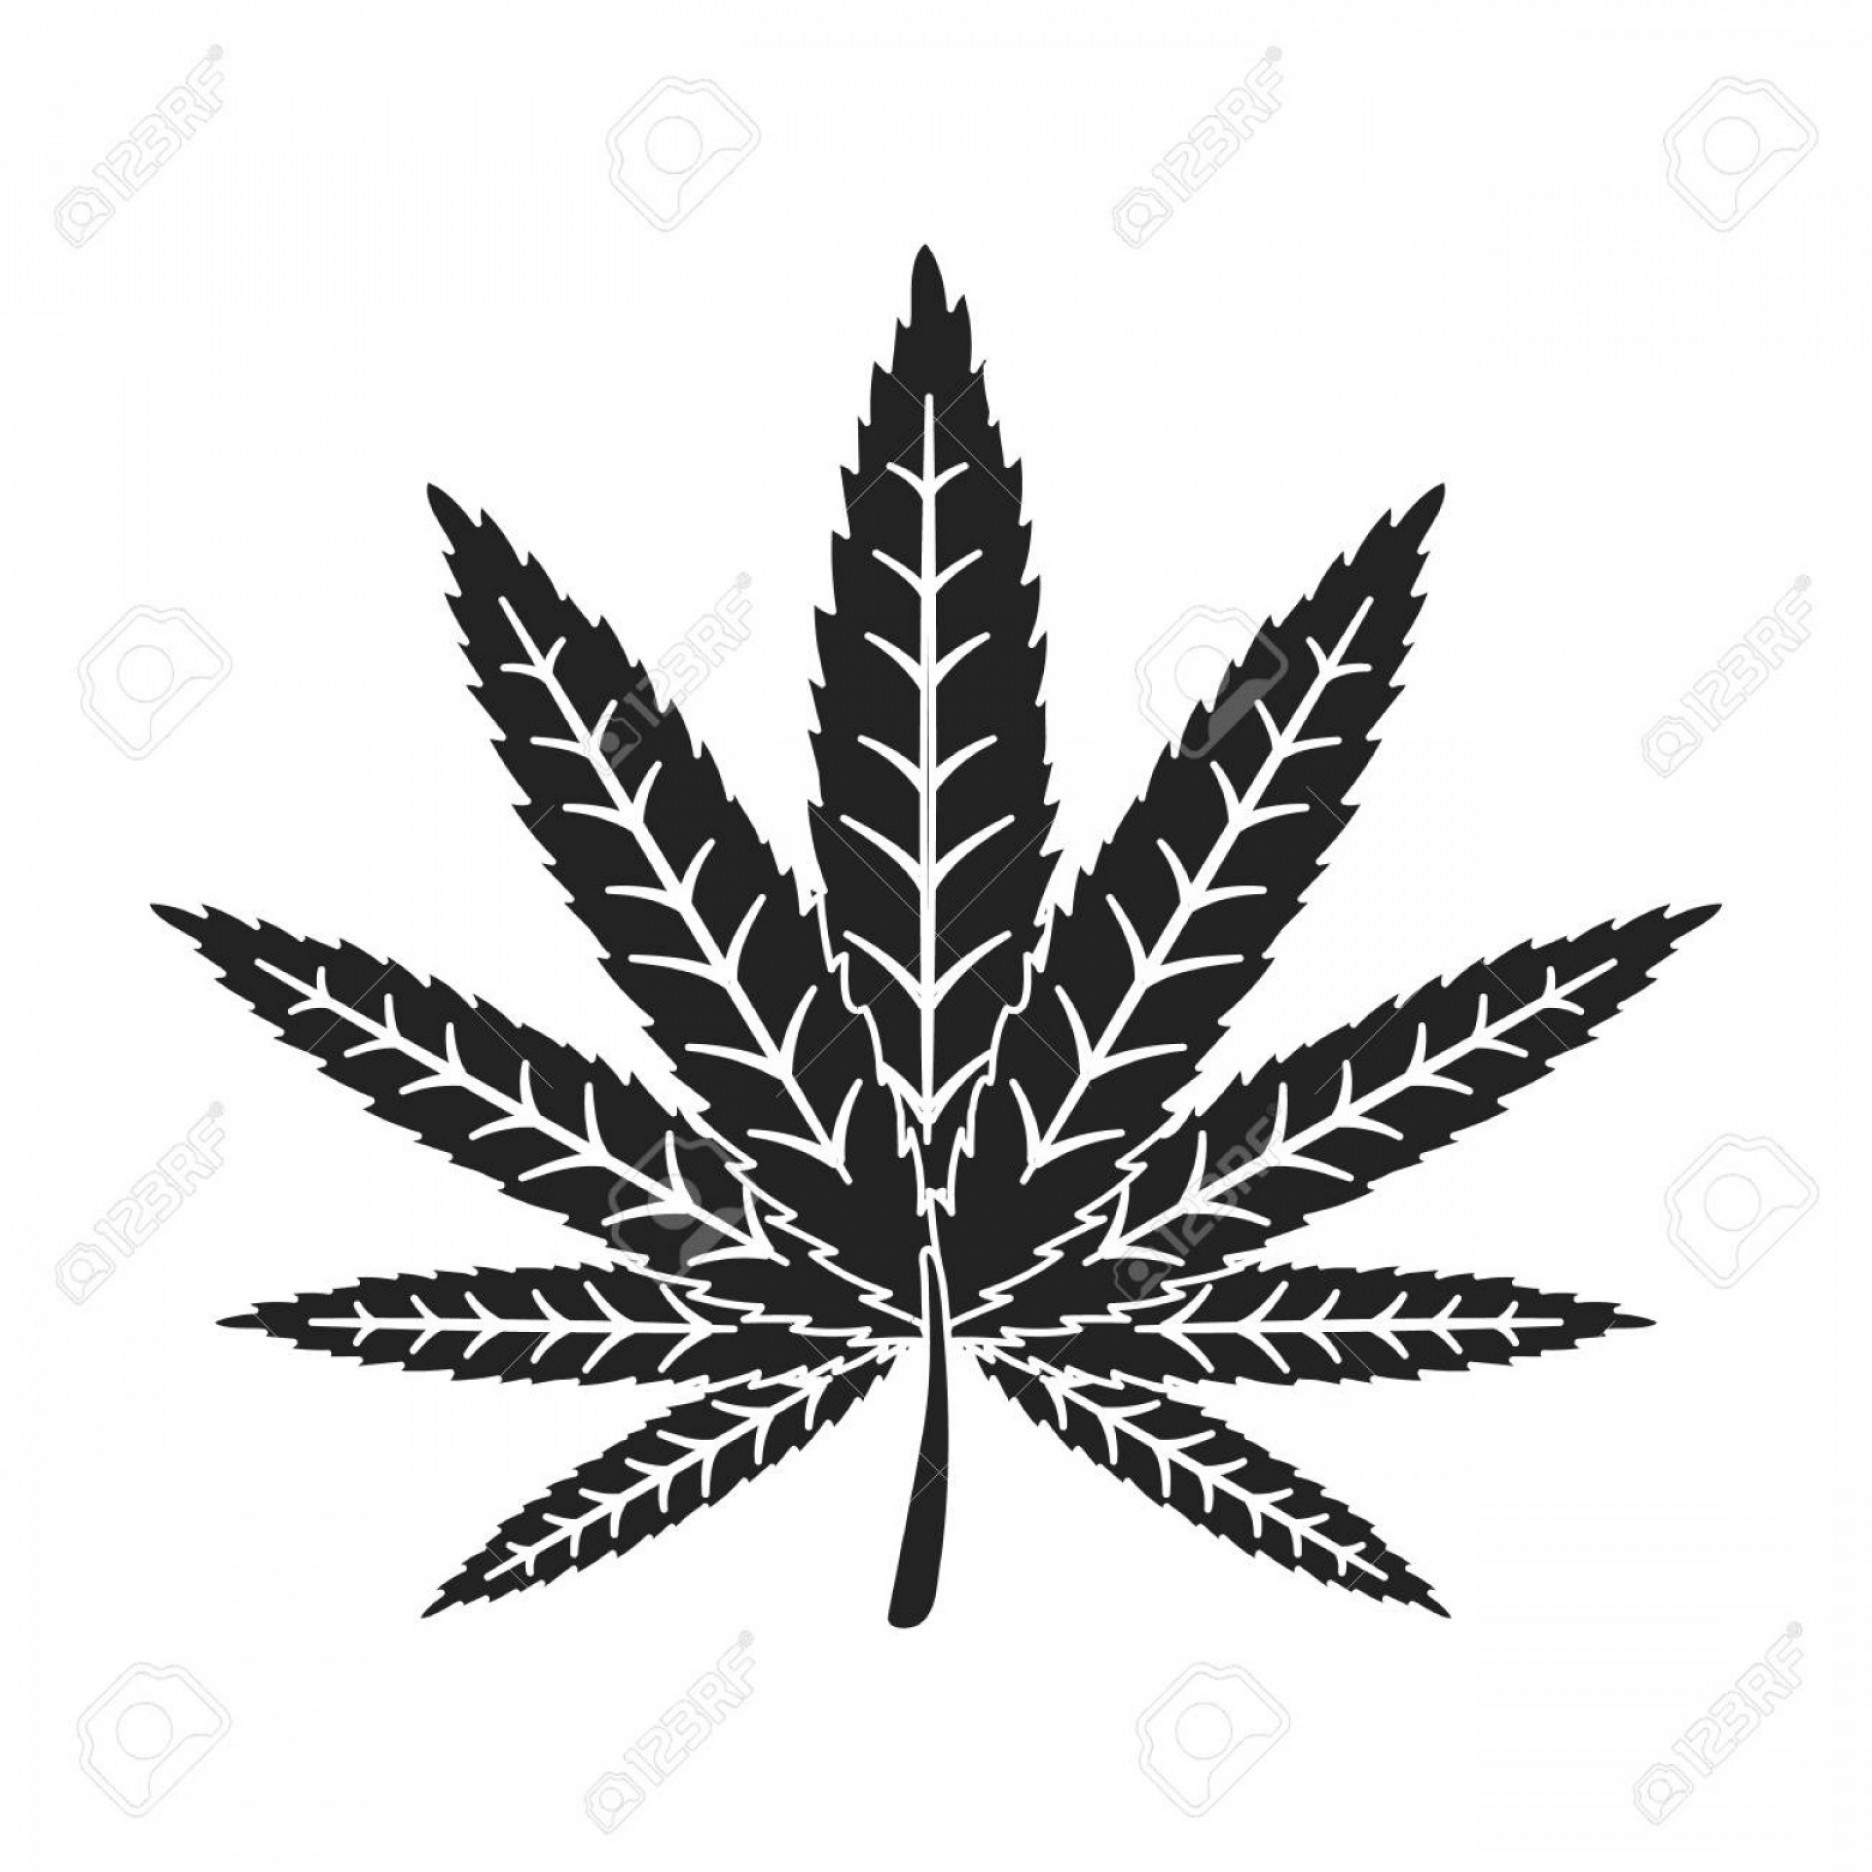 Black And White Vector Image Of Weed Plants: Photostock Vector Marijuana Leaf Icon In Black Style Isolated On White Background Drugs Symbol Vector Illustration